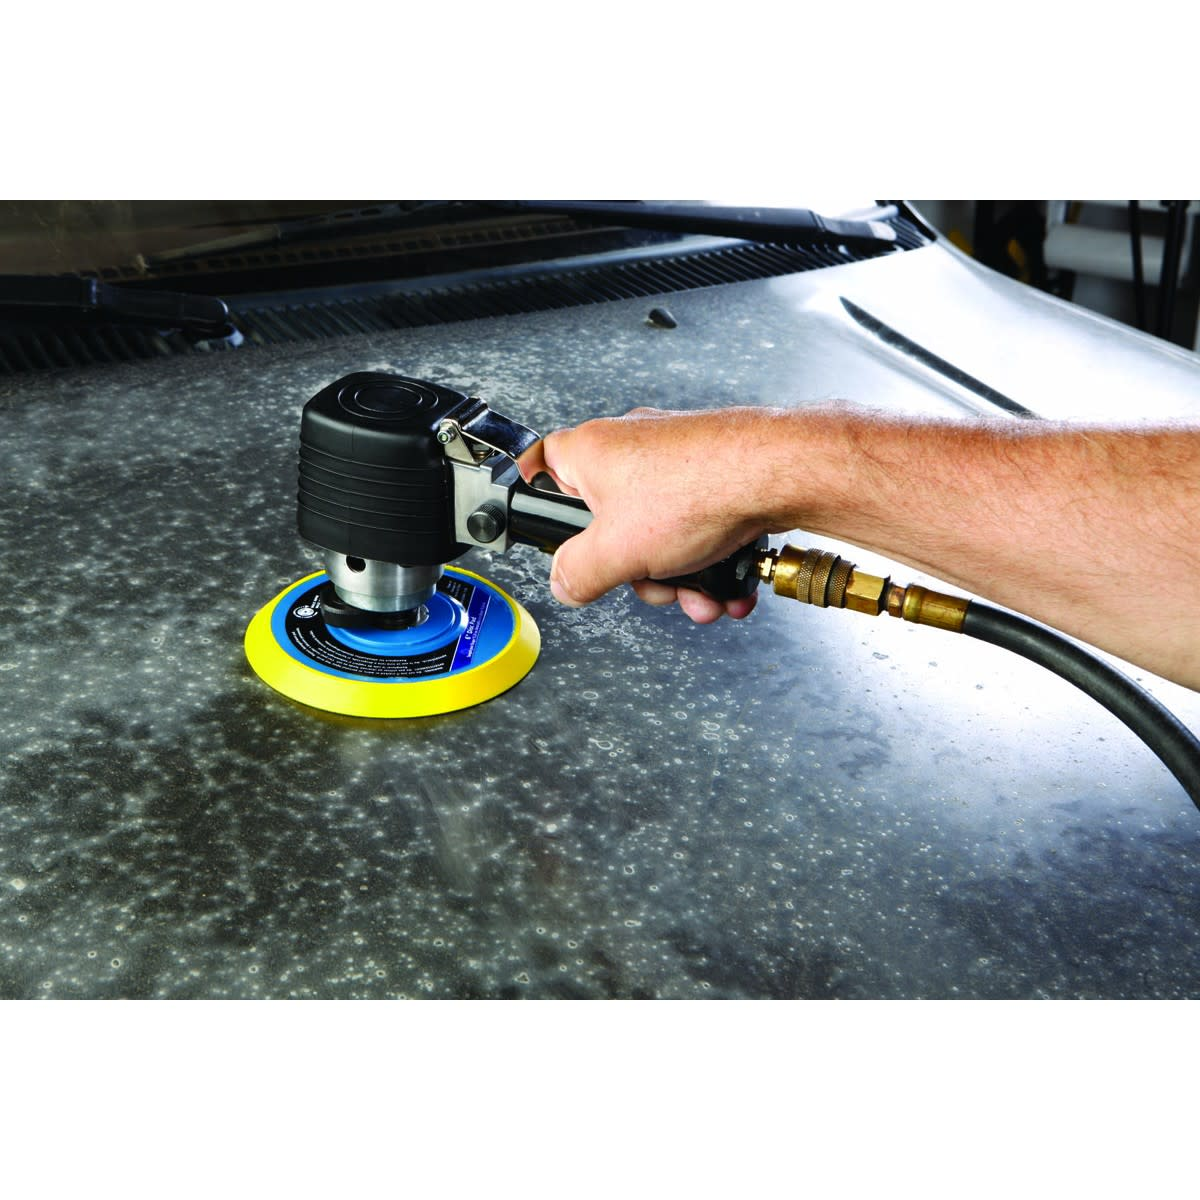 top-uses-for-air-compressors-for-the-handyman